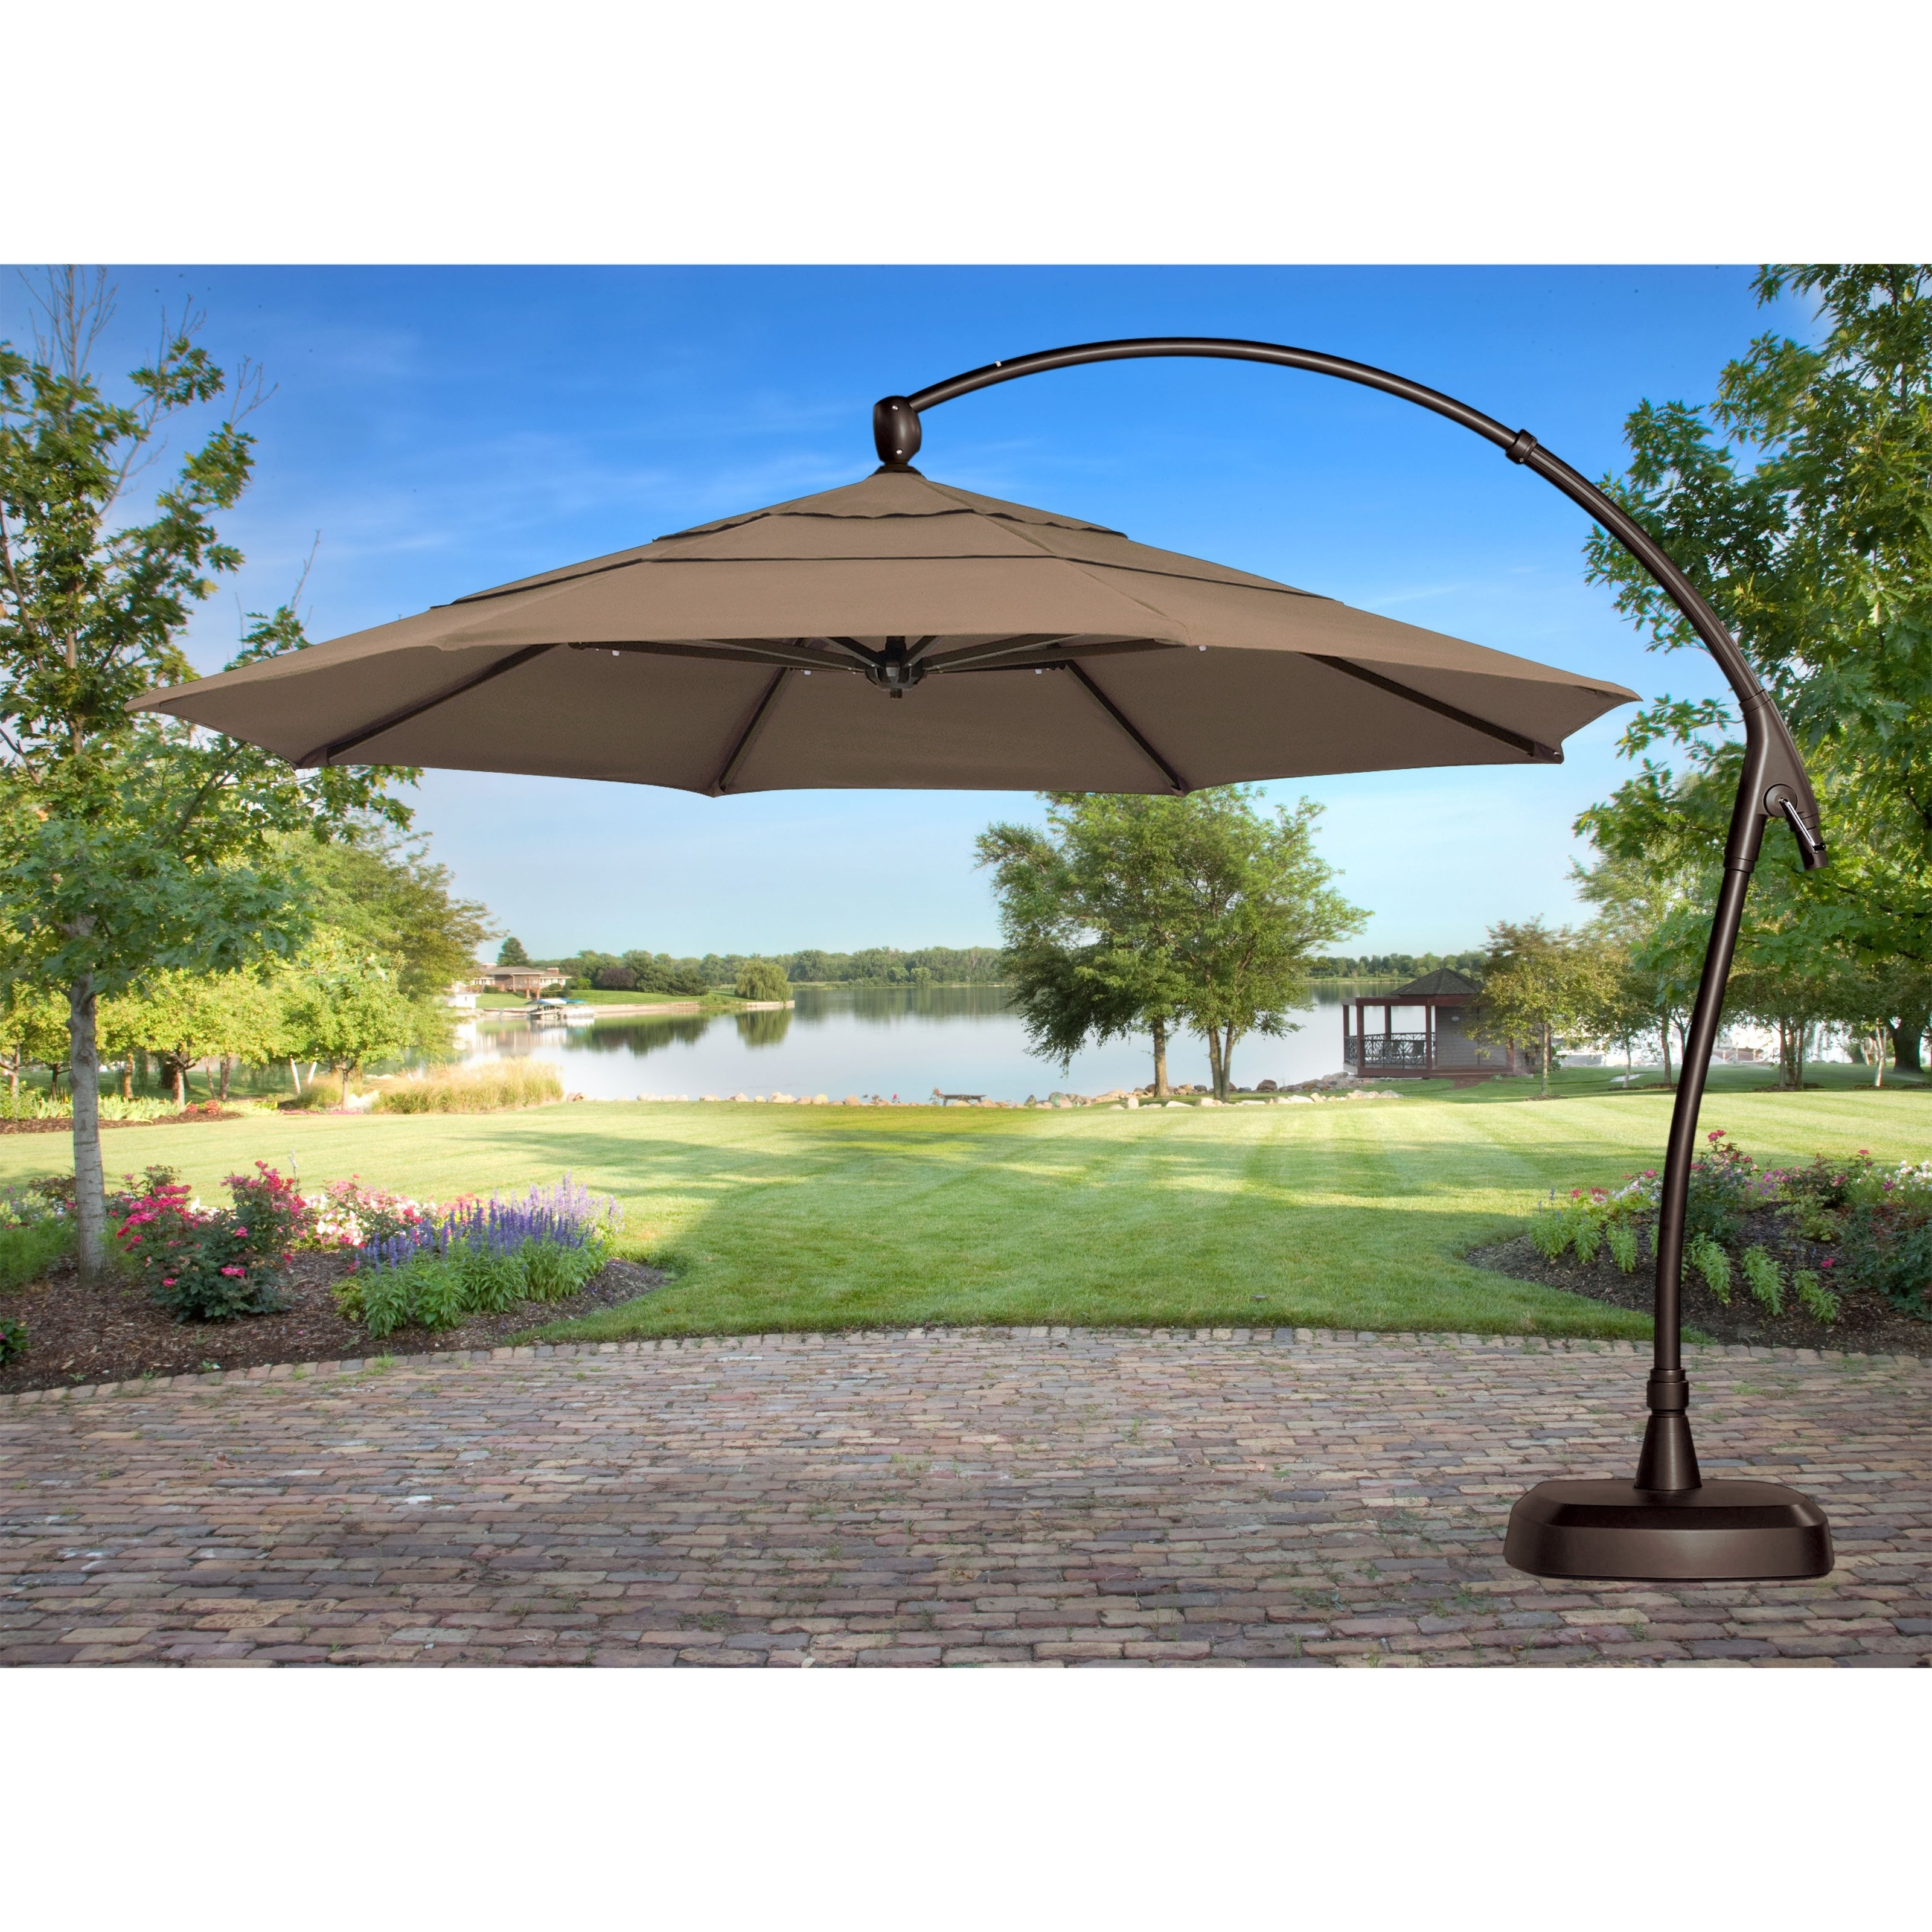 11 Ft. Sunbrella Patio Umbrellas Pertaining To 2019 Treasure Garden 11 Ft. Cantilever Offset Sunbrella Patio Umbrella (Gallery 2 of 20)